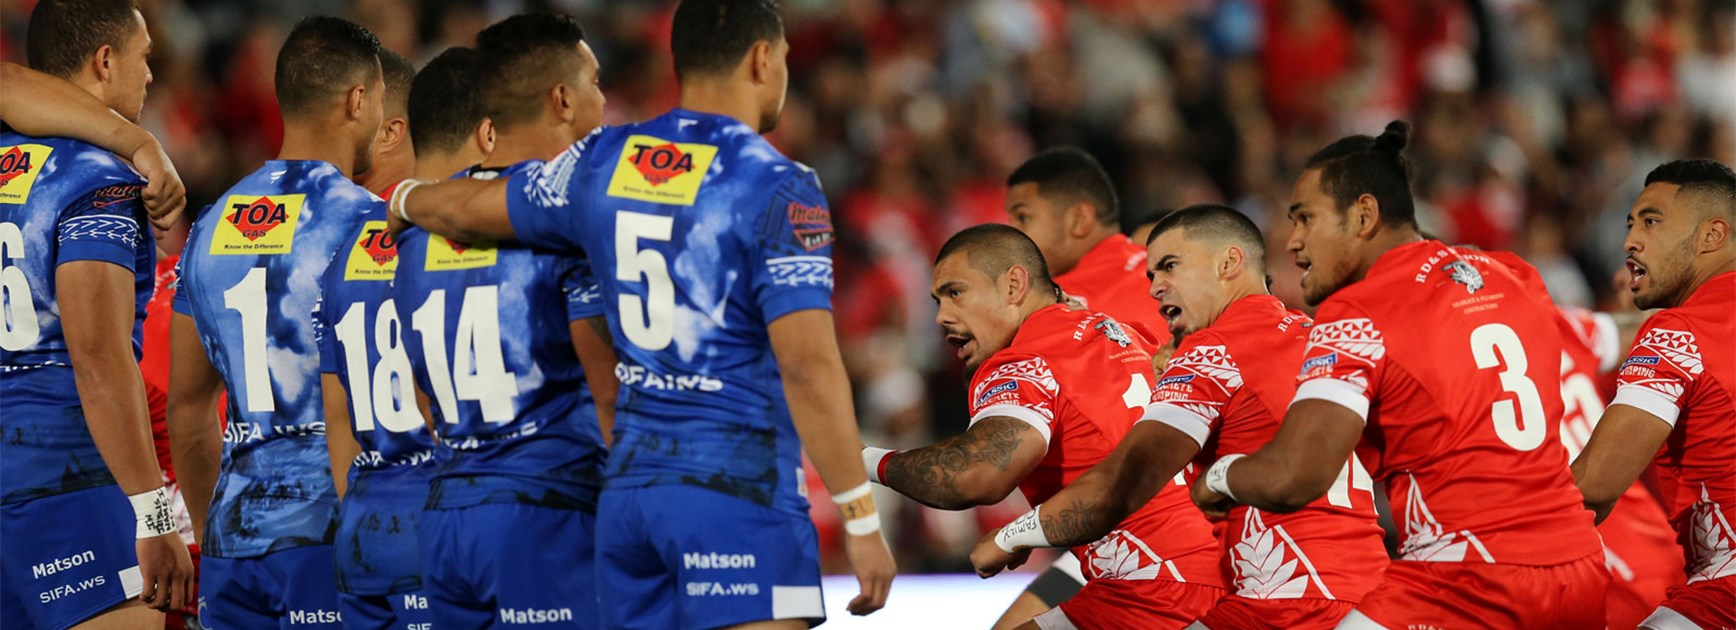 Samoa face off against Tonga's pre-game war dance on Saturday.